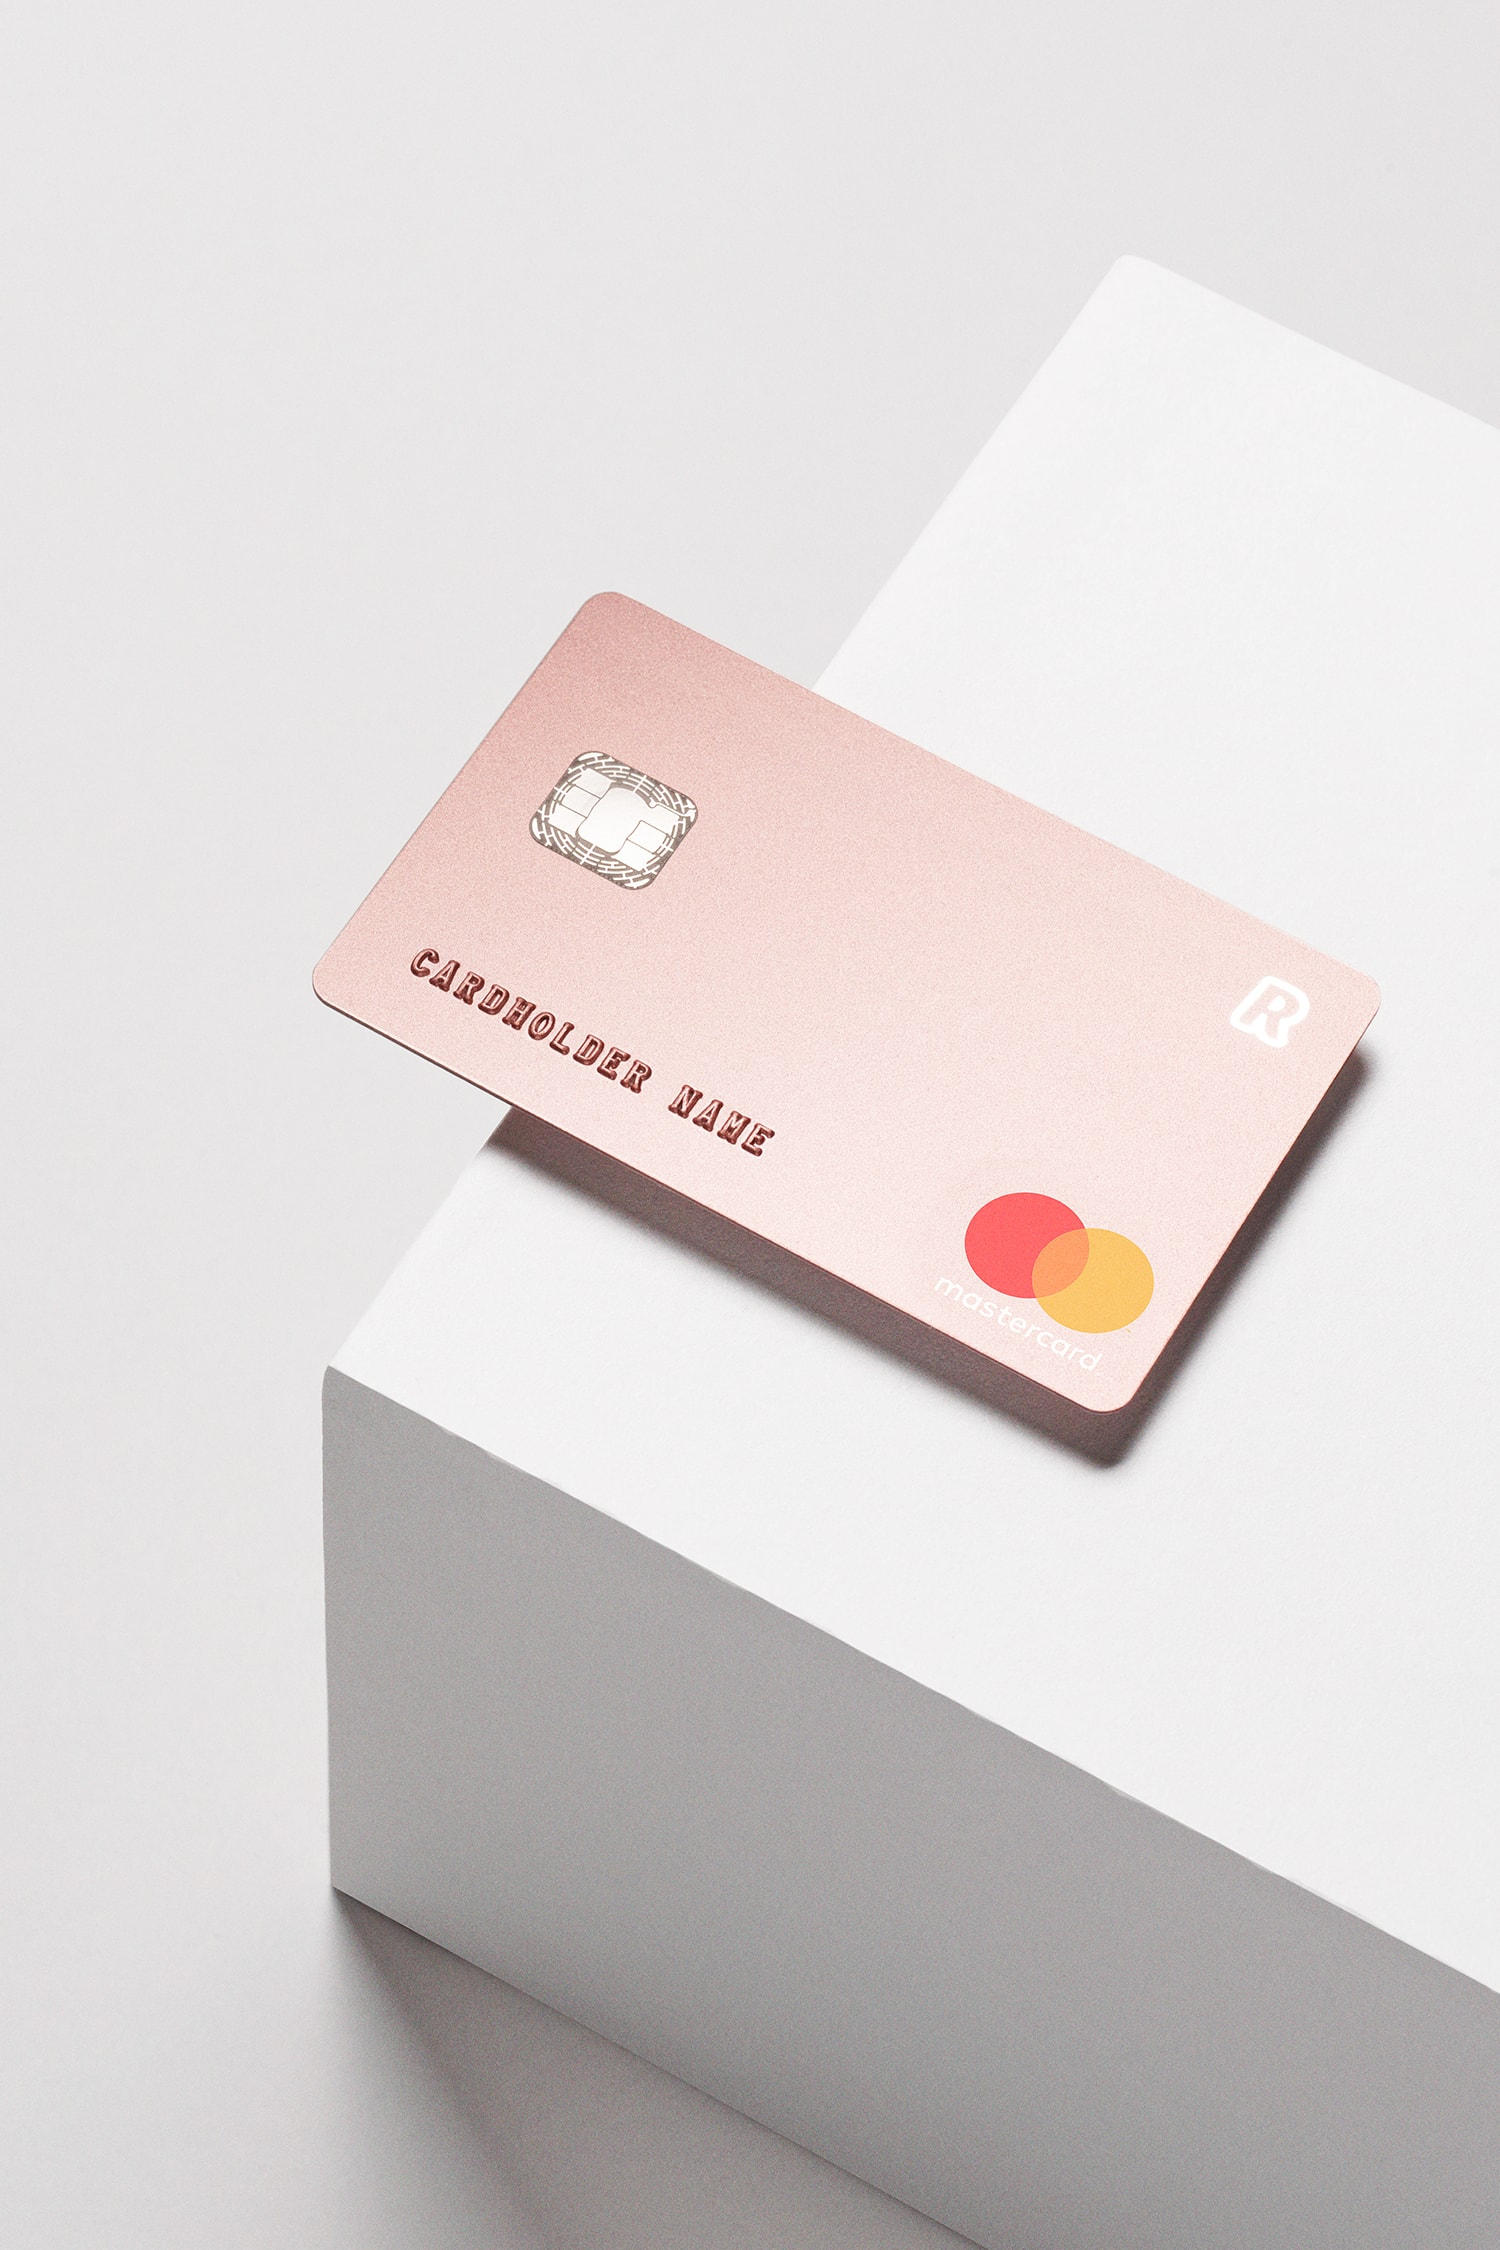 Perspective view of the Revolut premium bank card laid on the edge of a white plinth.